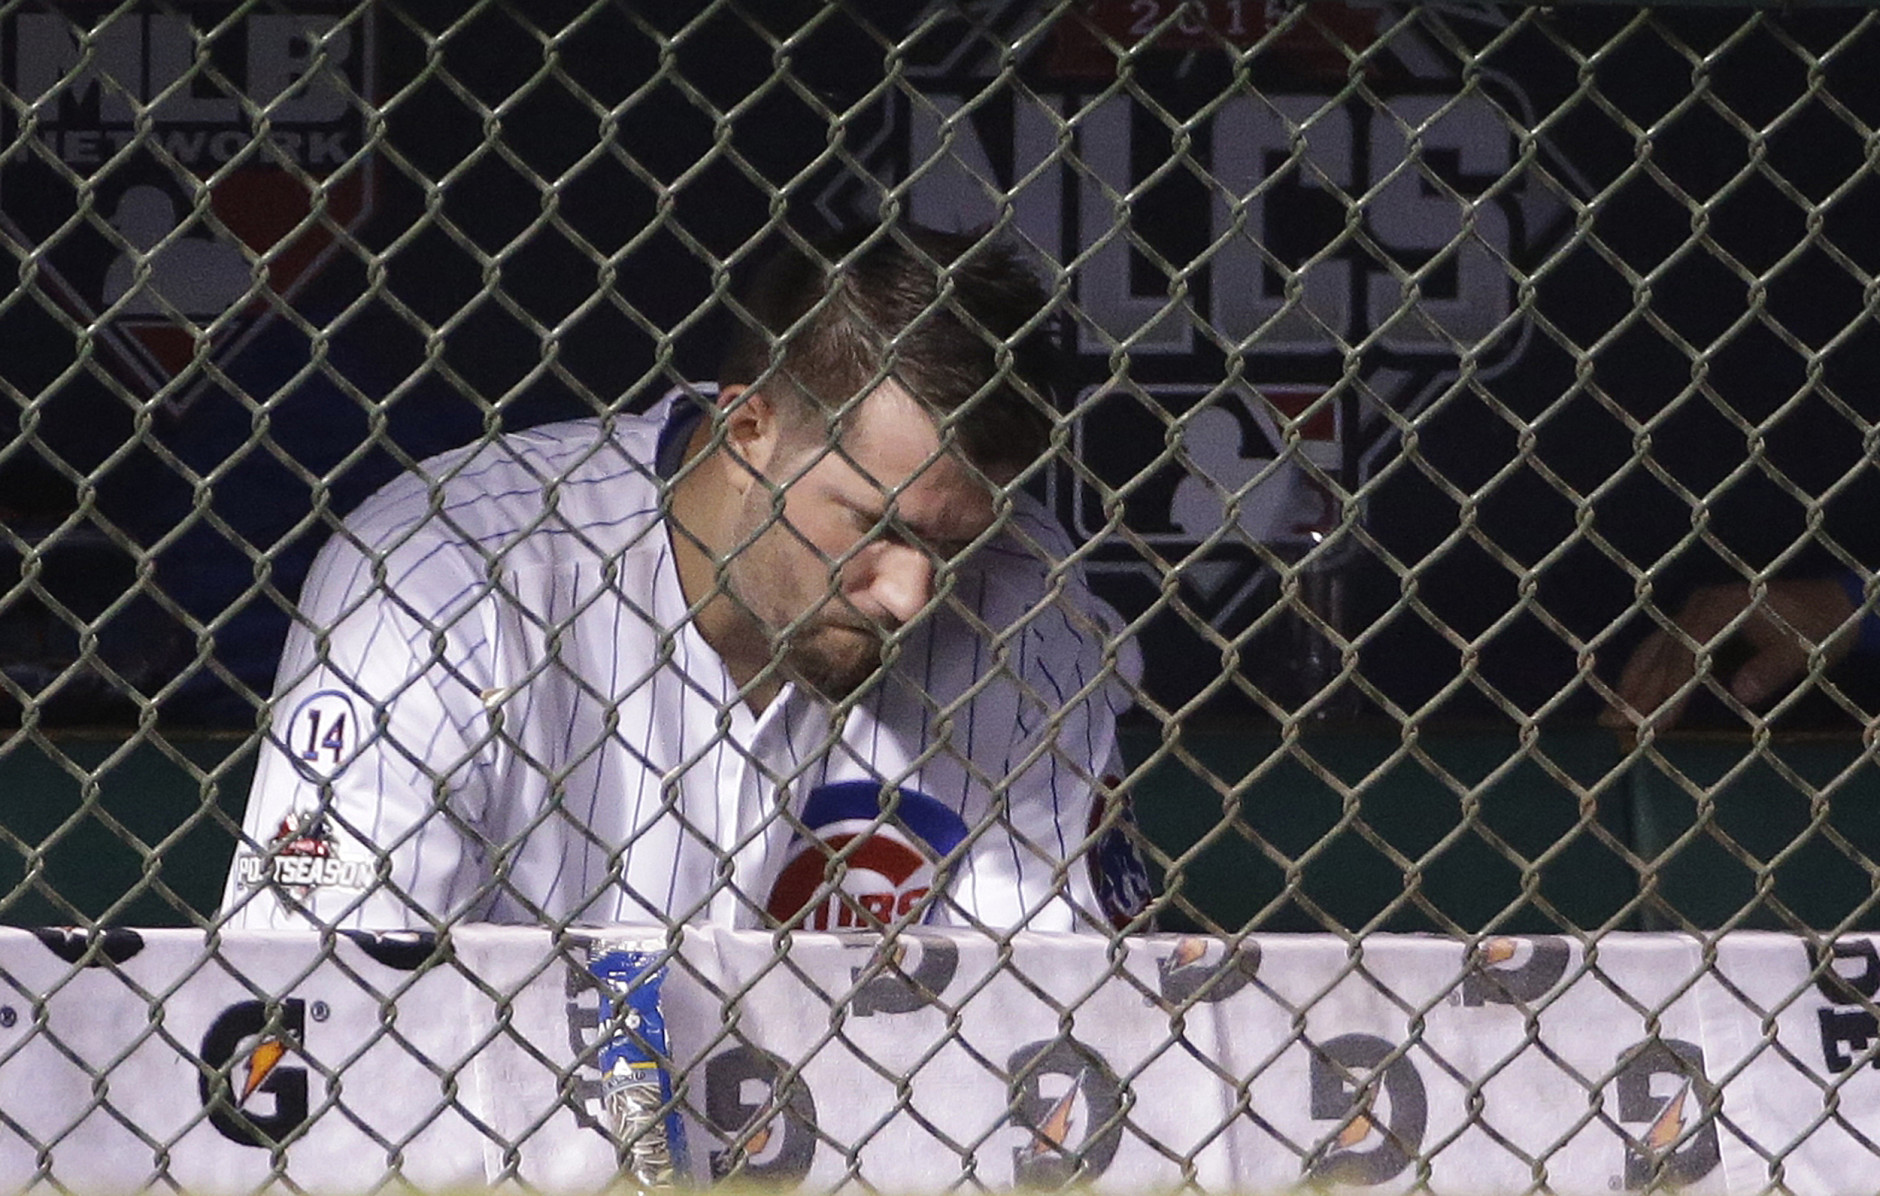 Chicago Cubs pitcher Jason Hammel sits in the dugout after being taken out of the game during the second inning of Game 4 of the National League baseball championship series against the New York Mets Wednesday, Oct. 21, 2015, in Chicago. (AP Photo/David J. Phillip)